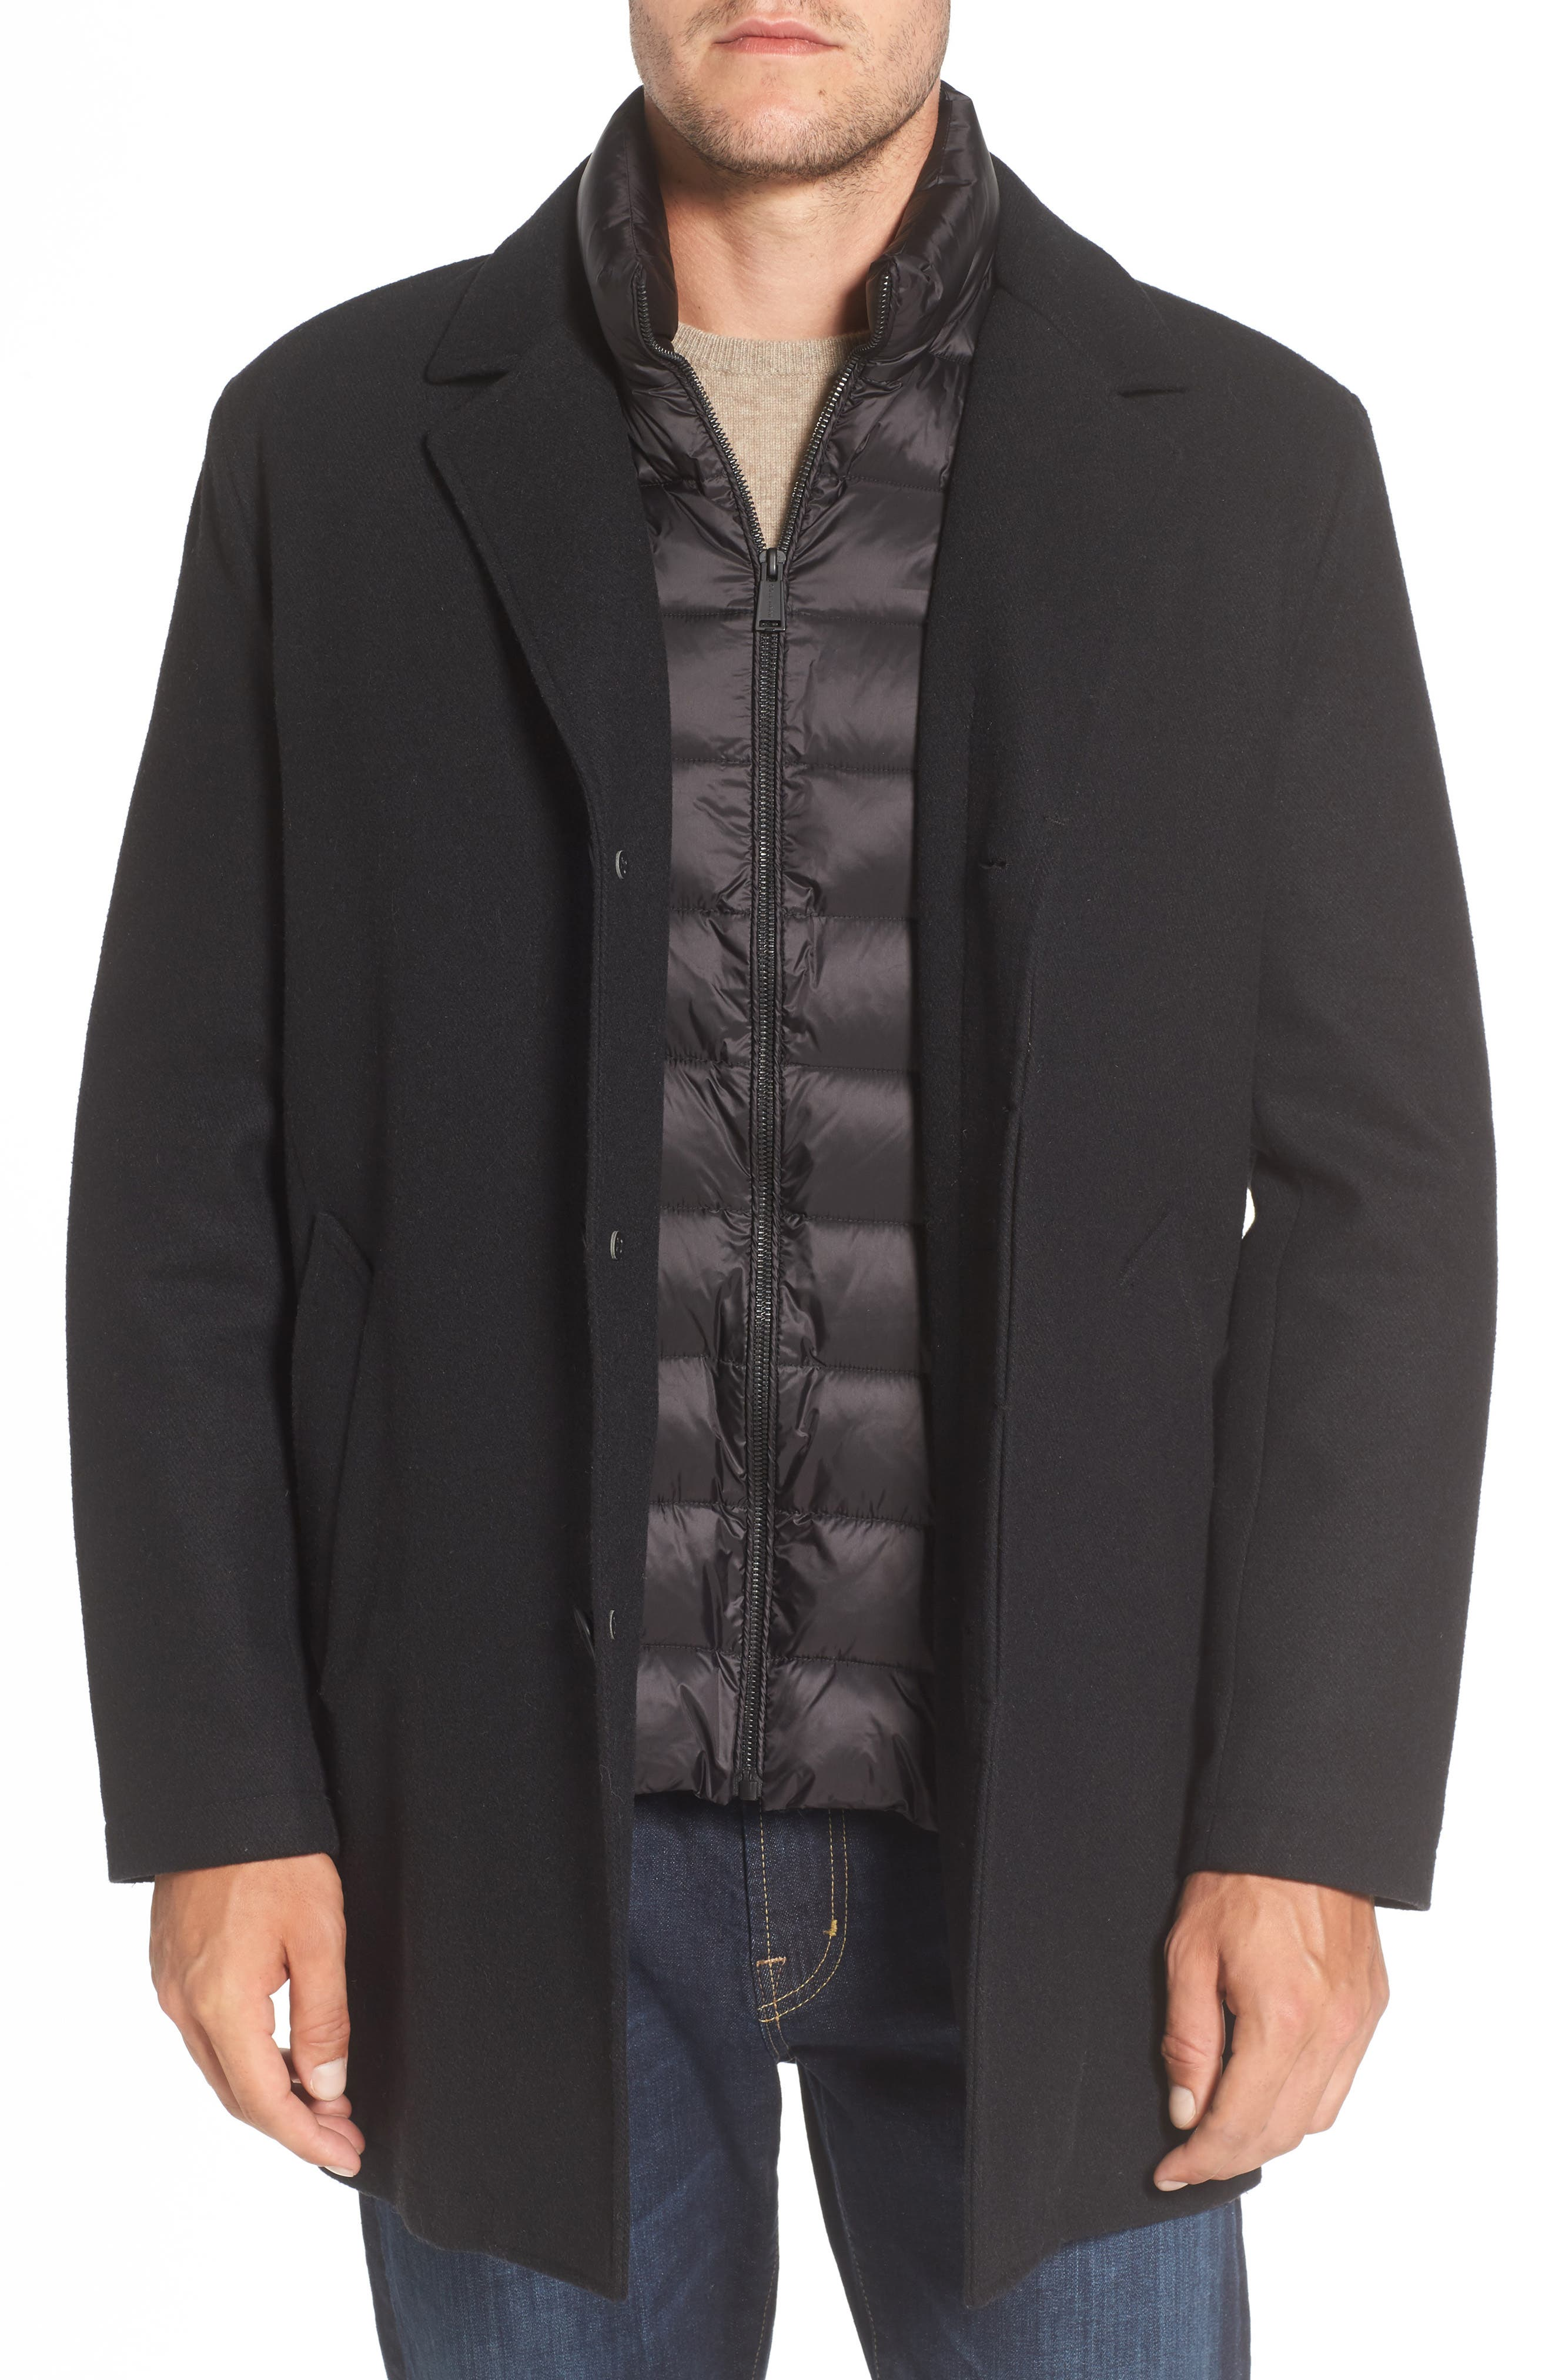 Water Repellent Jacket with Inset Bib & Faux Fur Lining,                             Main thumbnail 1, color,                             Black